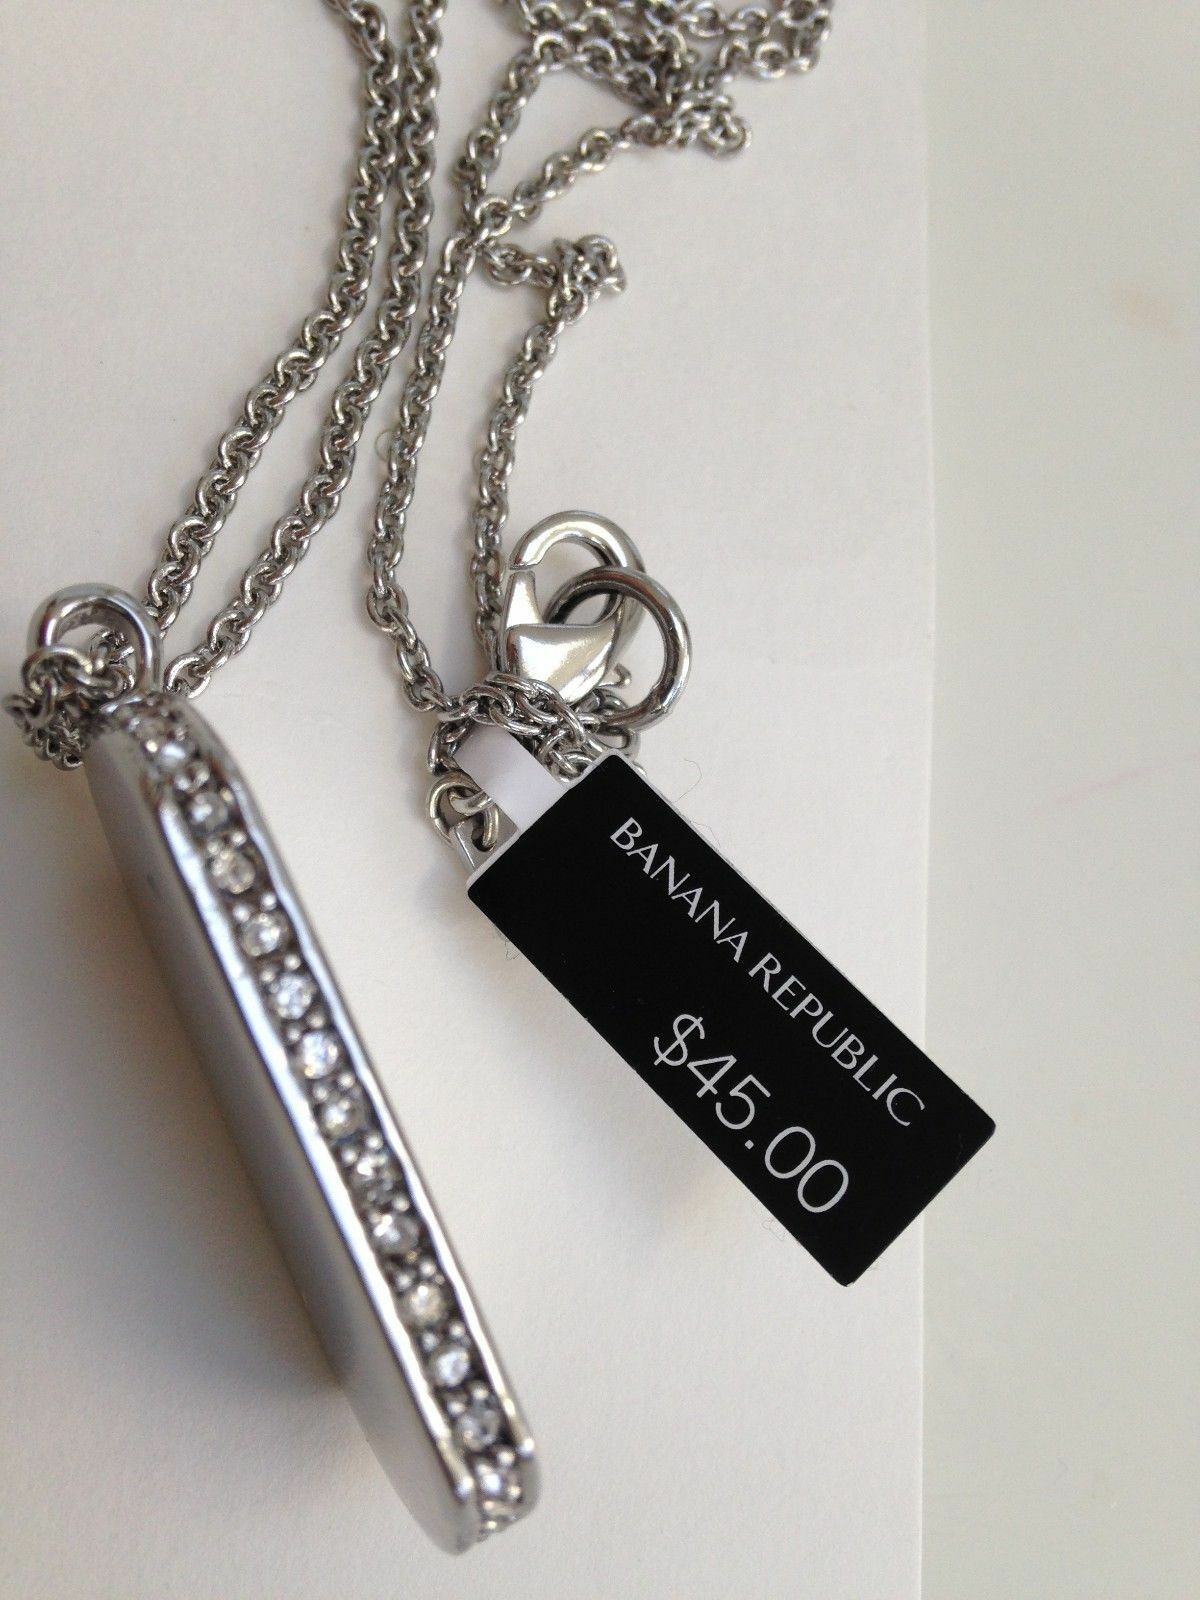 tag image pendant necklaces small fini products dog